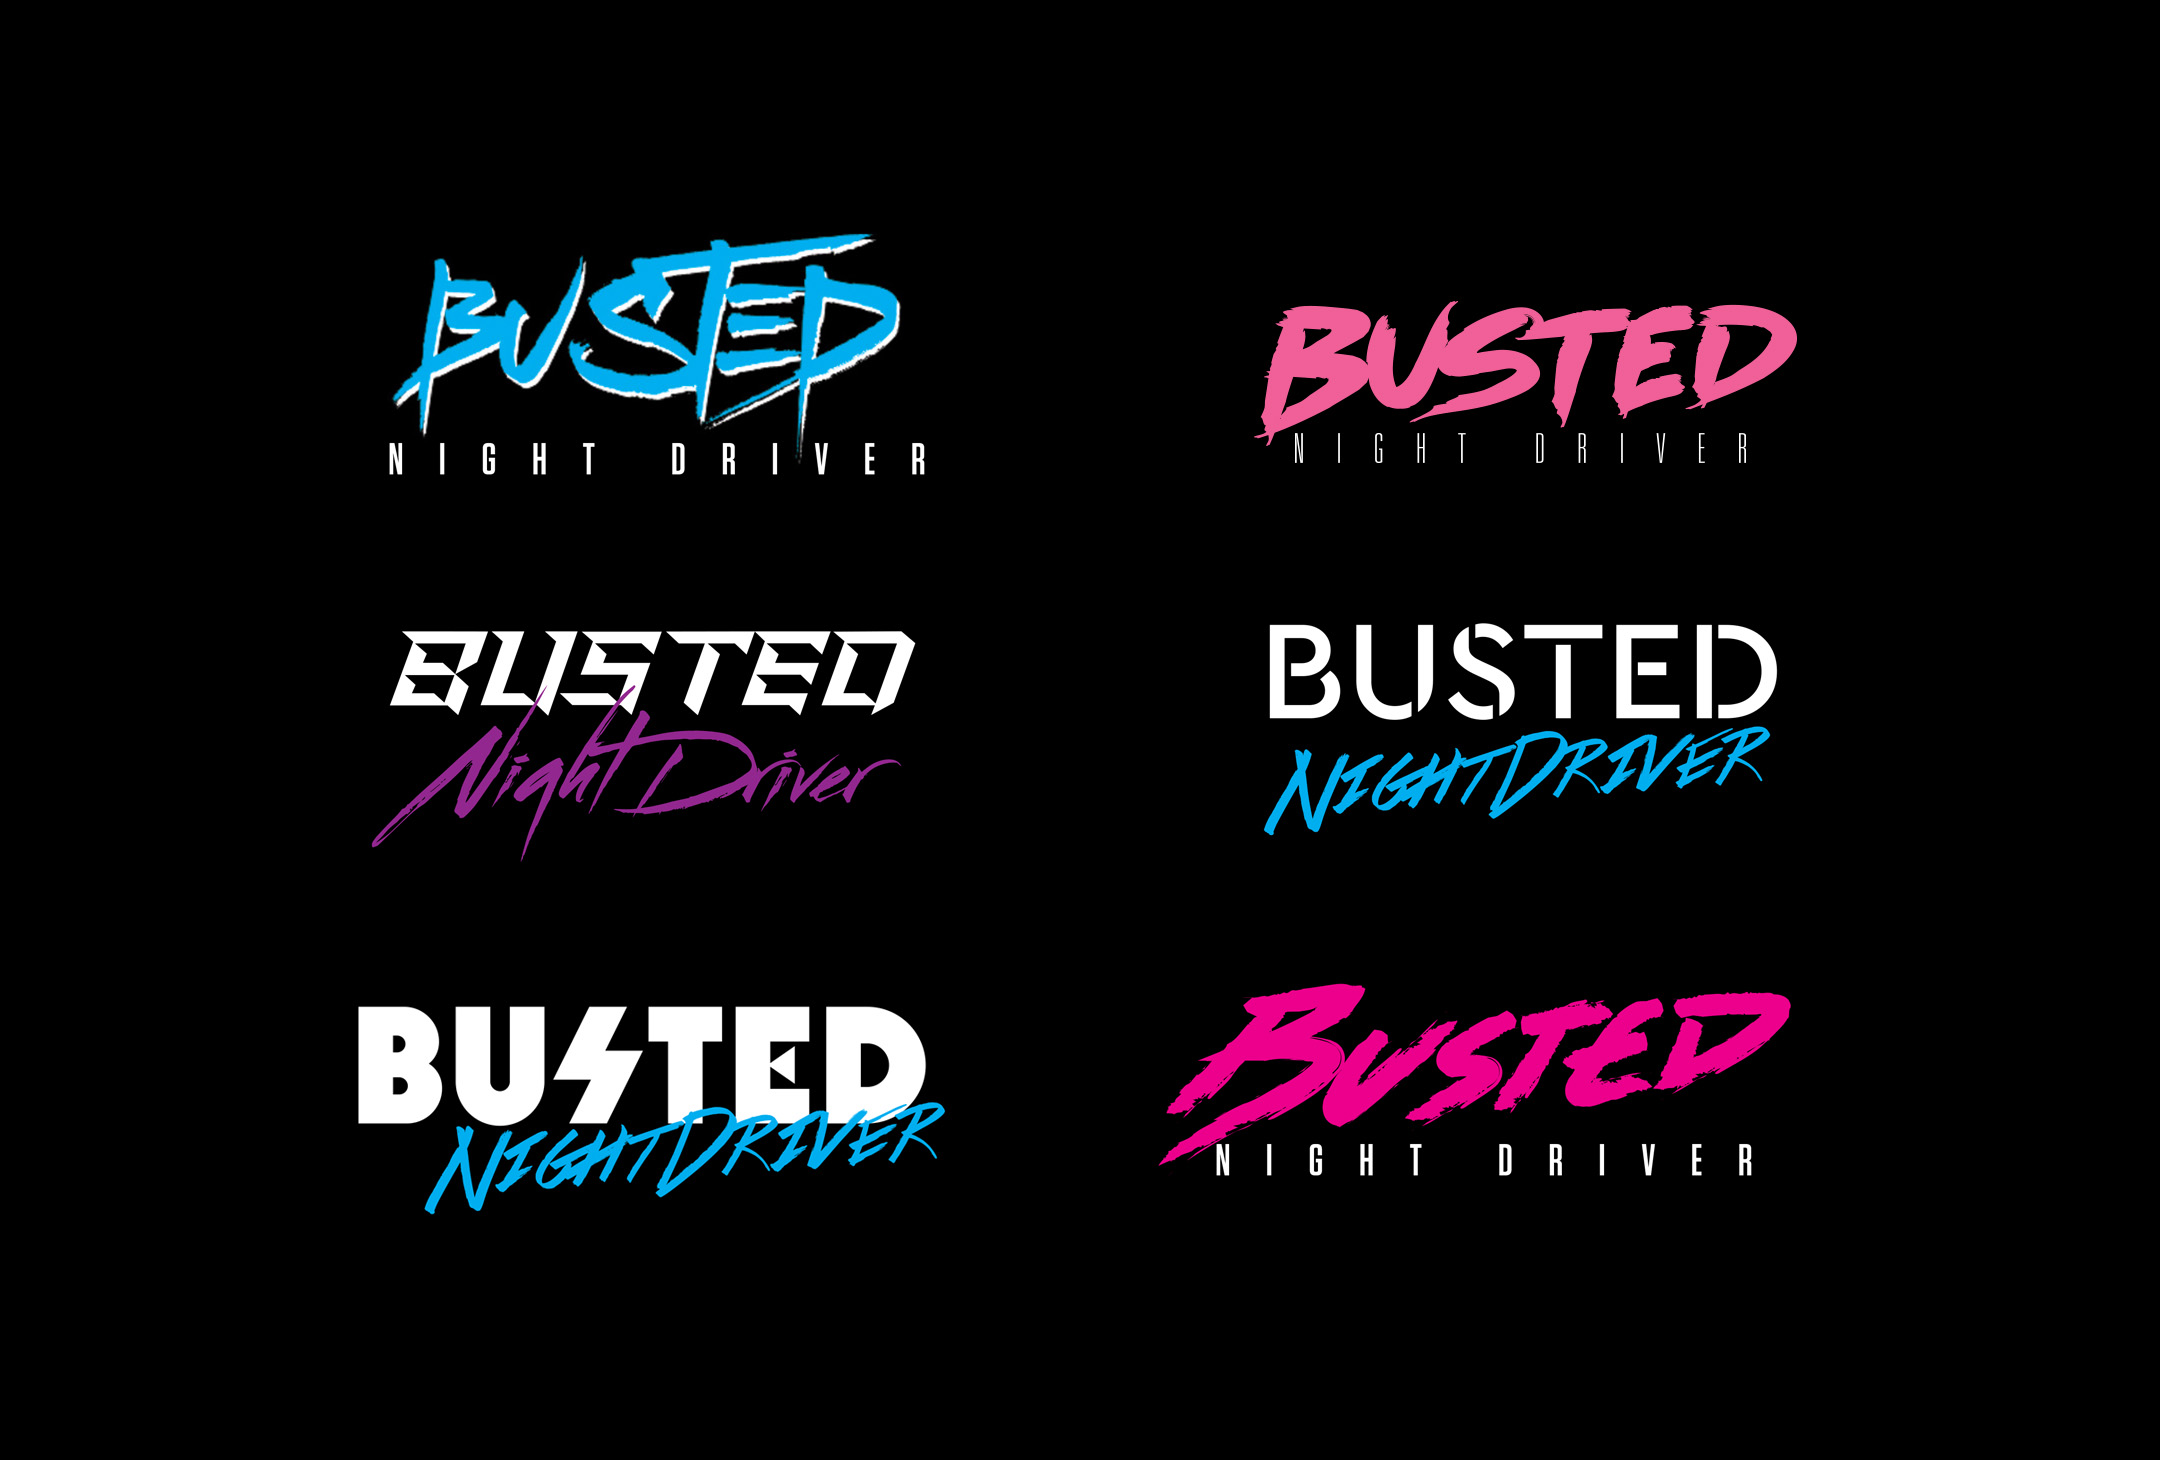 ZIP_BUSTED_NEWS1-2_0003_logo_ideas